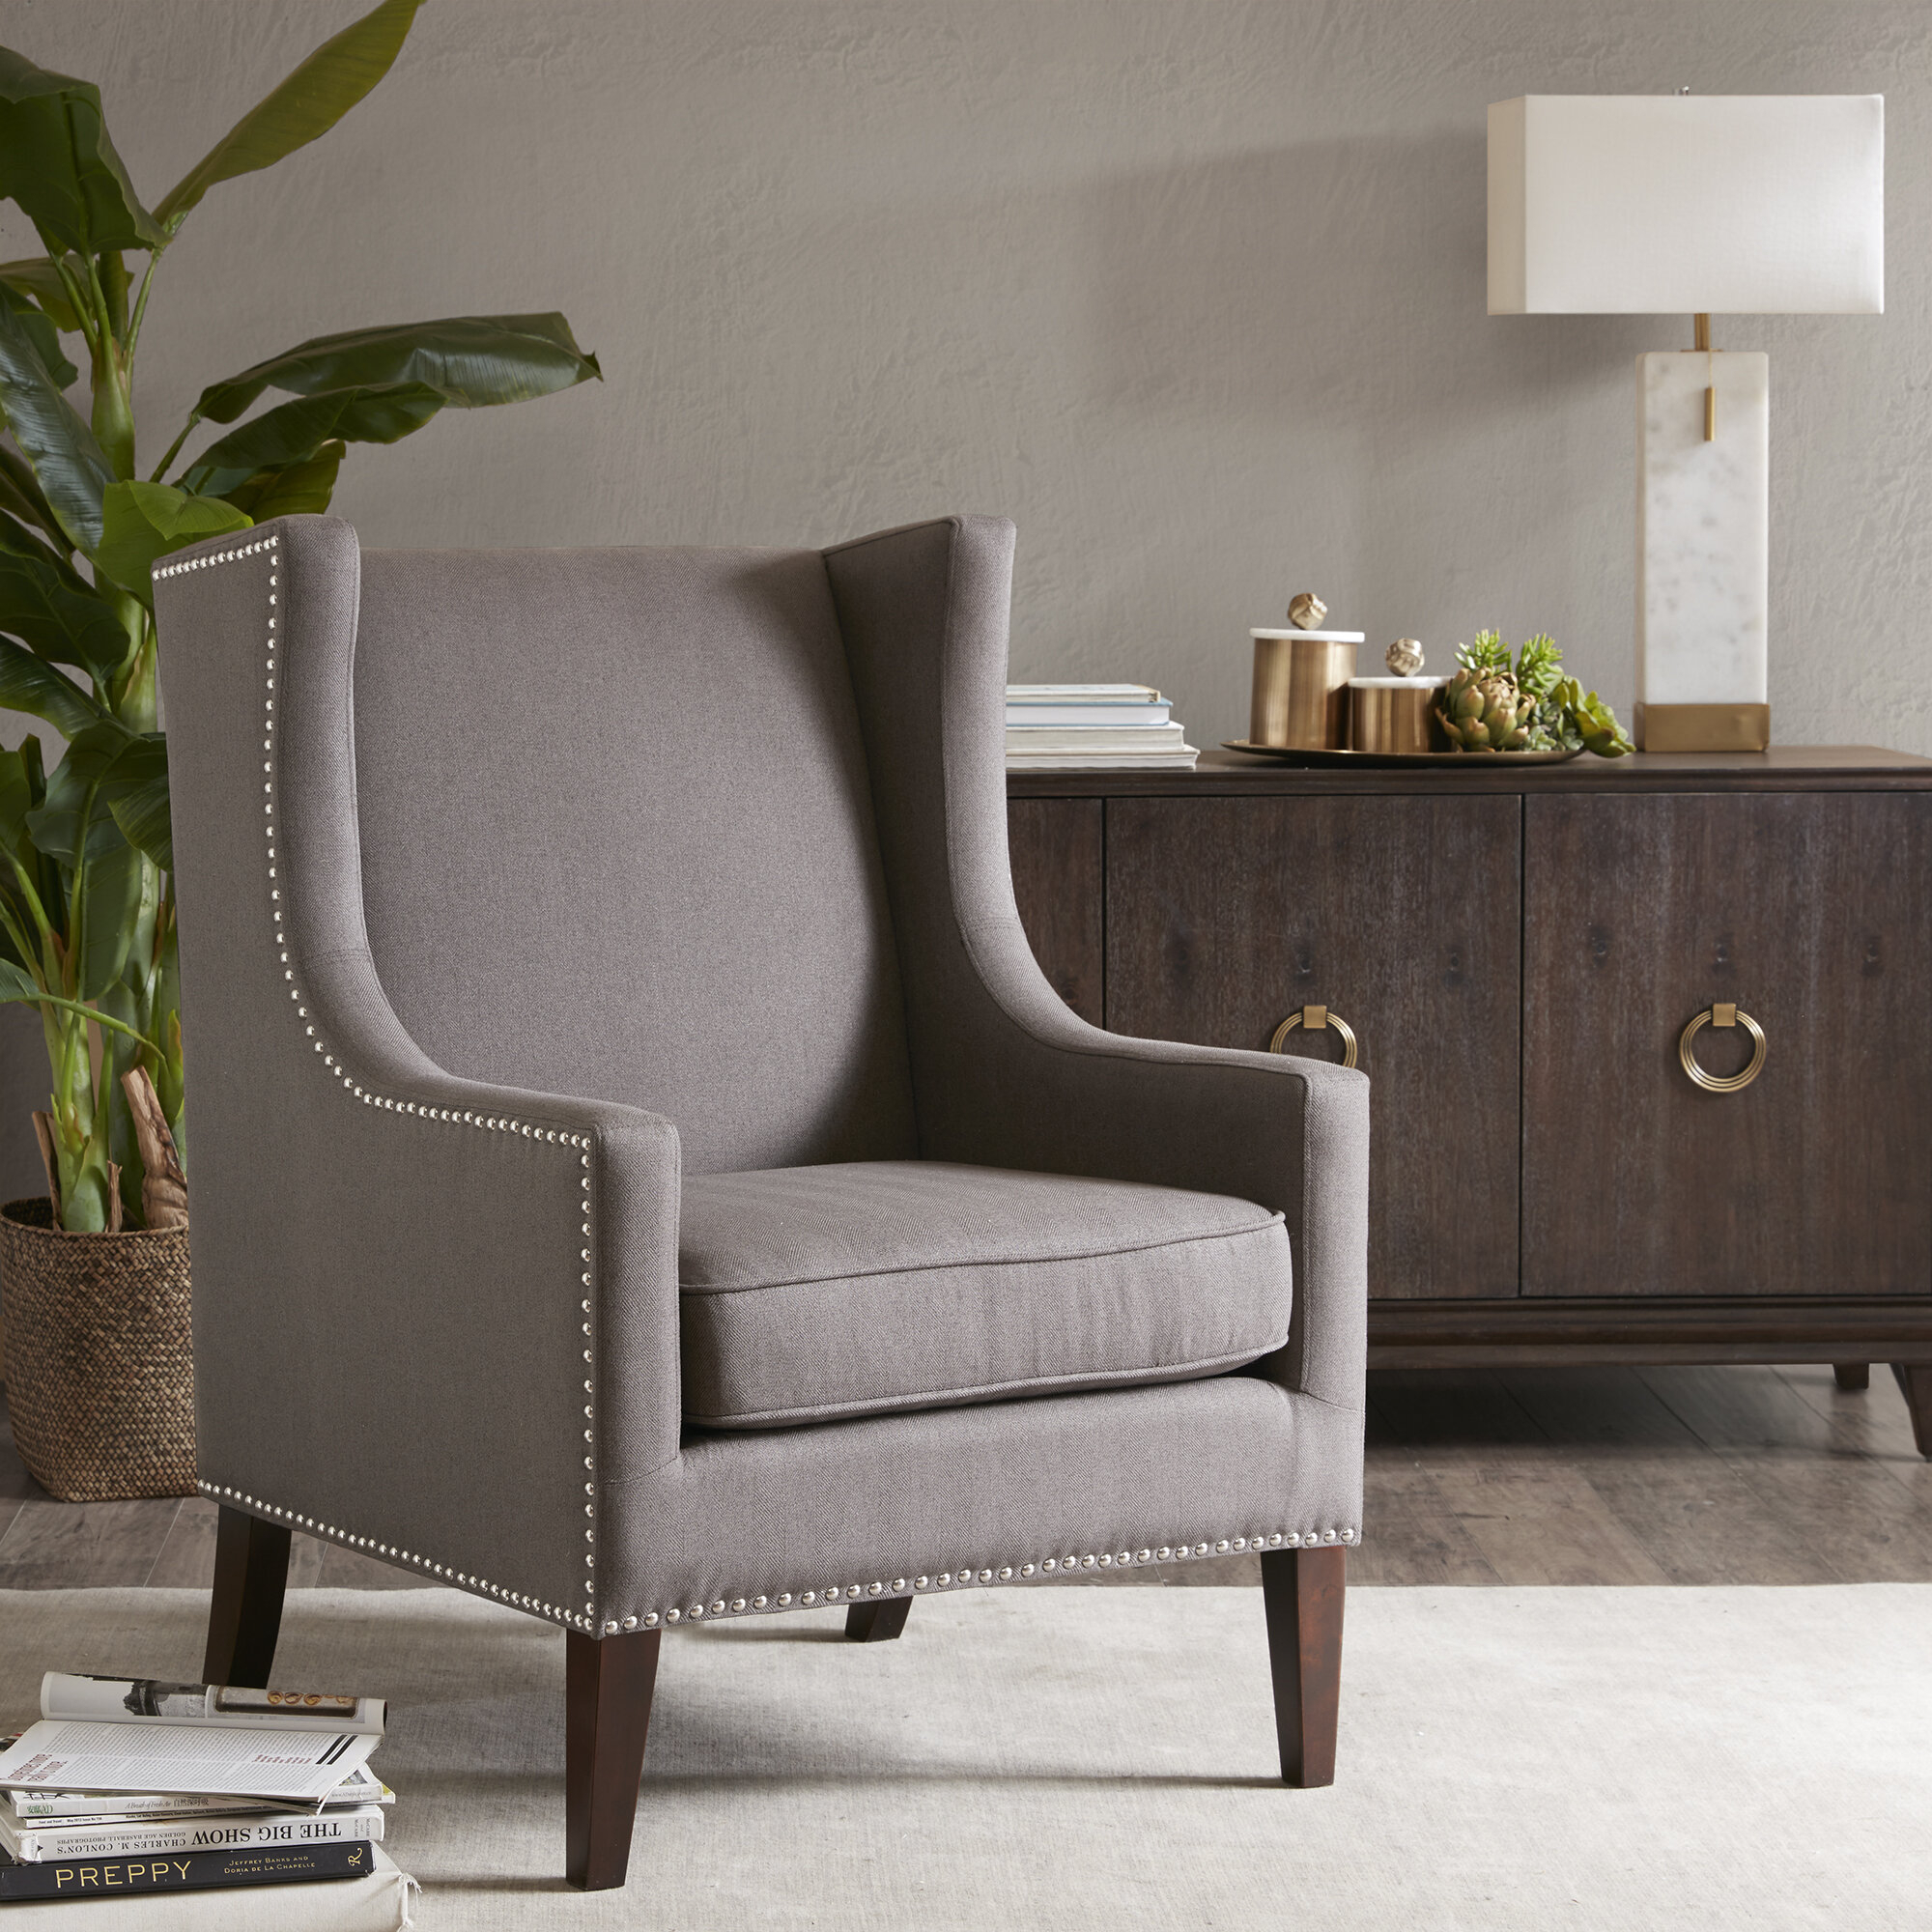 "Ivo 30"" W Tufted Wingback Chair Pertaining To Chagnon Wingback Chairs (View 4 of 15)"